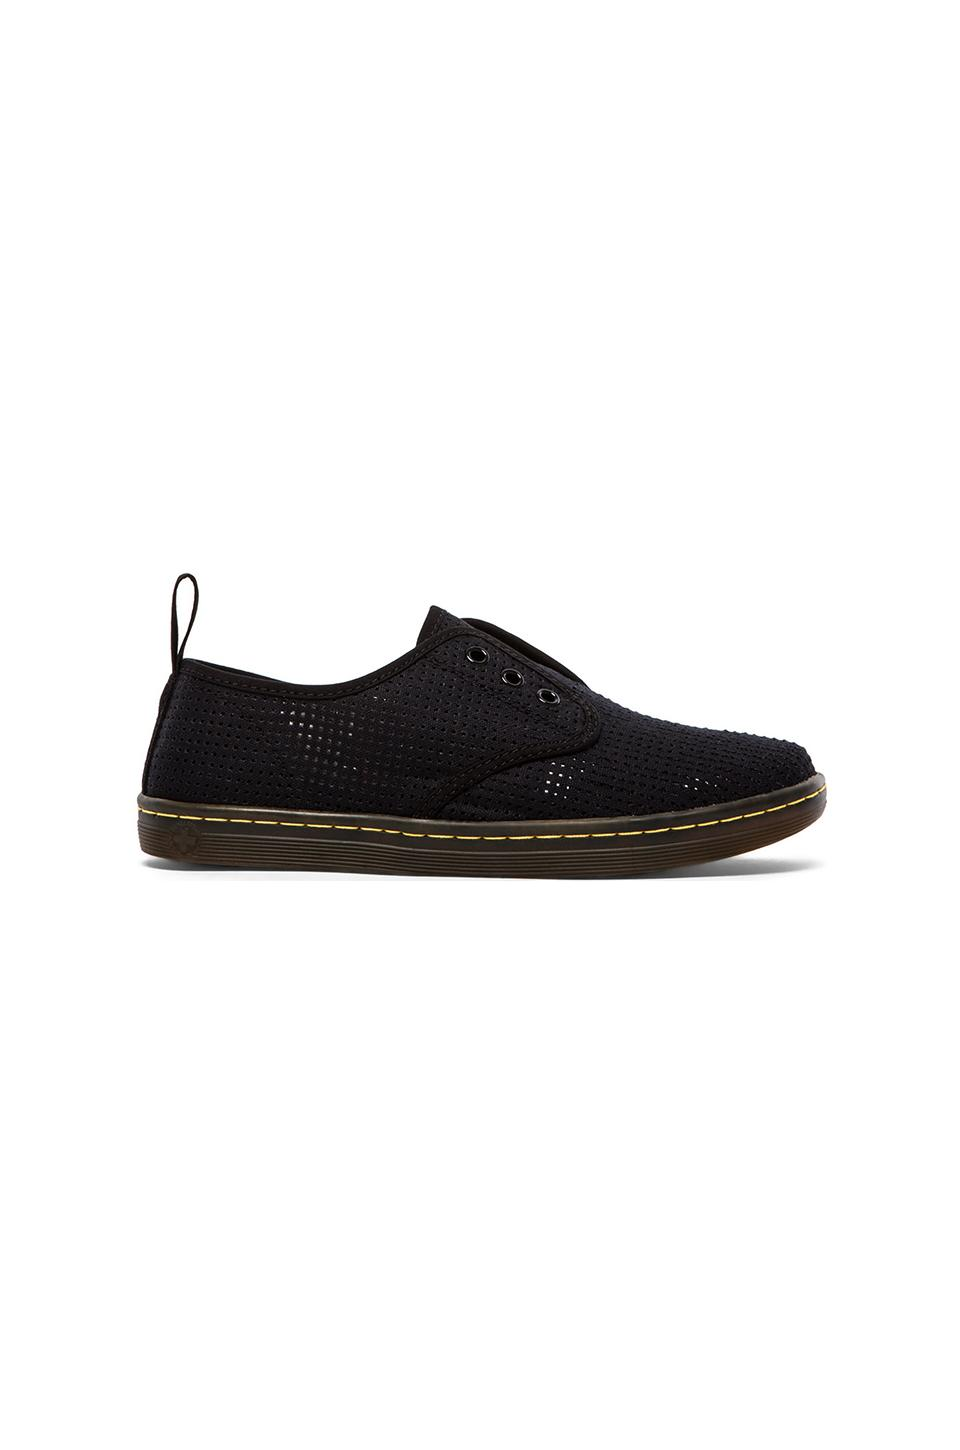 Dr. Martens 3-Eye Ade Elastic Slip On in Black